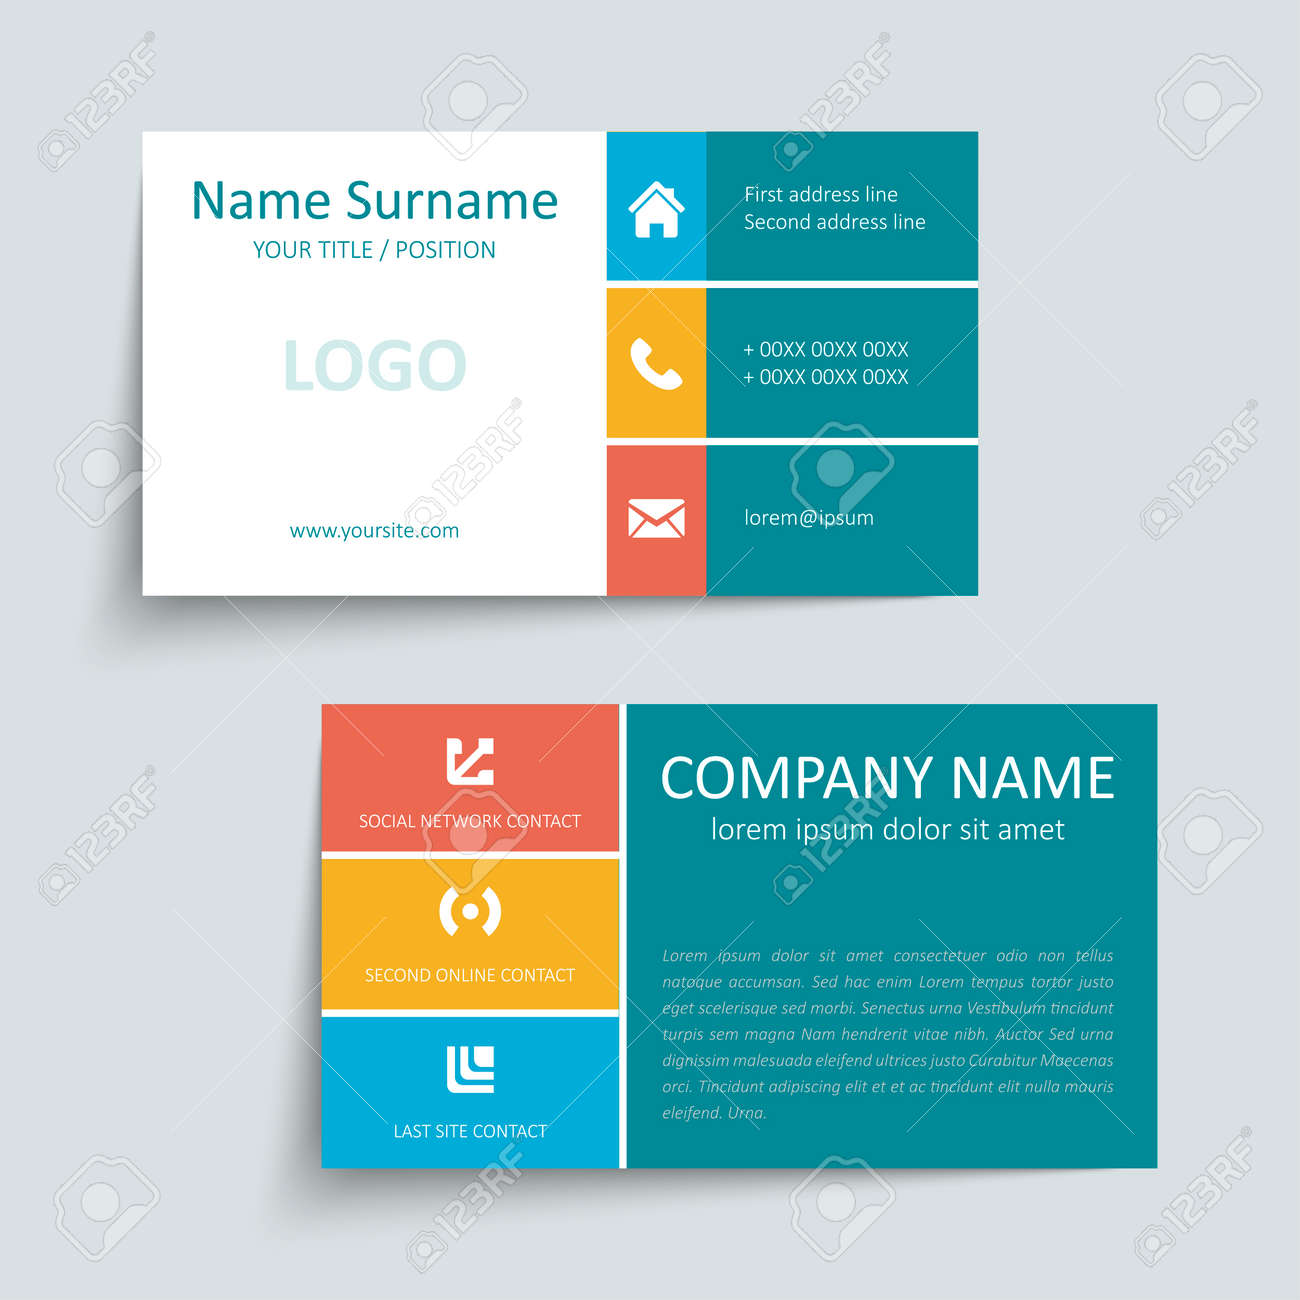 Business cards printing greensboro nc images card design and card business cards greensboro image collections card design and card business card printing high point nc images reheart Images